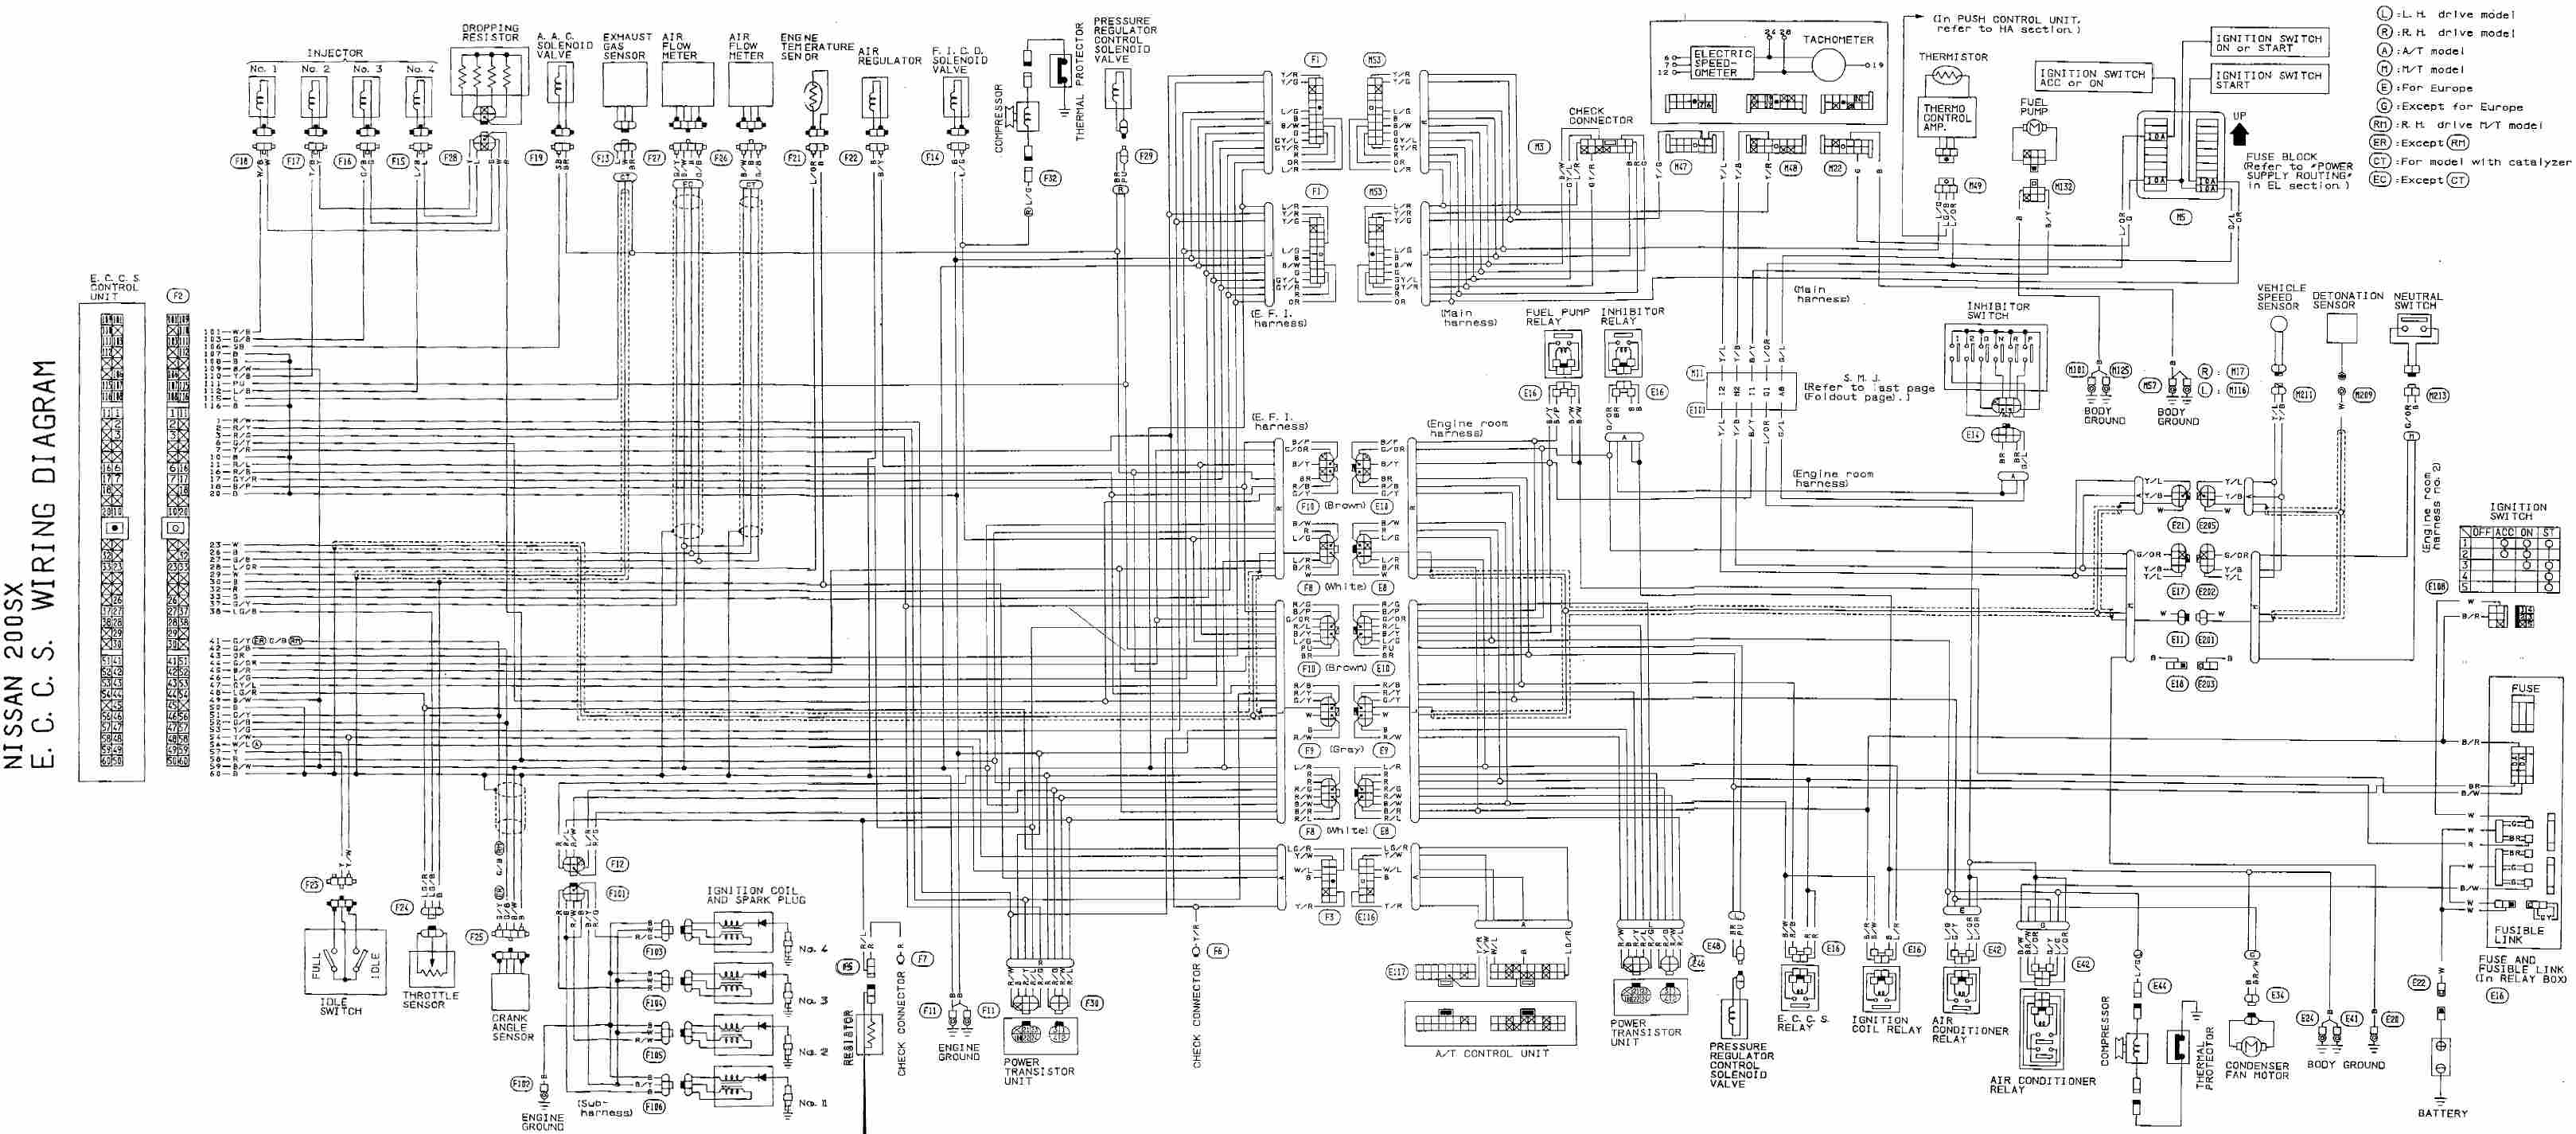 complete eccs wiring diagram of nissan 200x?t\=1508500919 300zx wiring diagram 300zx engine wiring diagram \u2022 wiring diagrams nissan versa wiring diagram at eliteediting.co